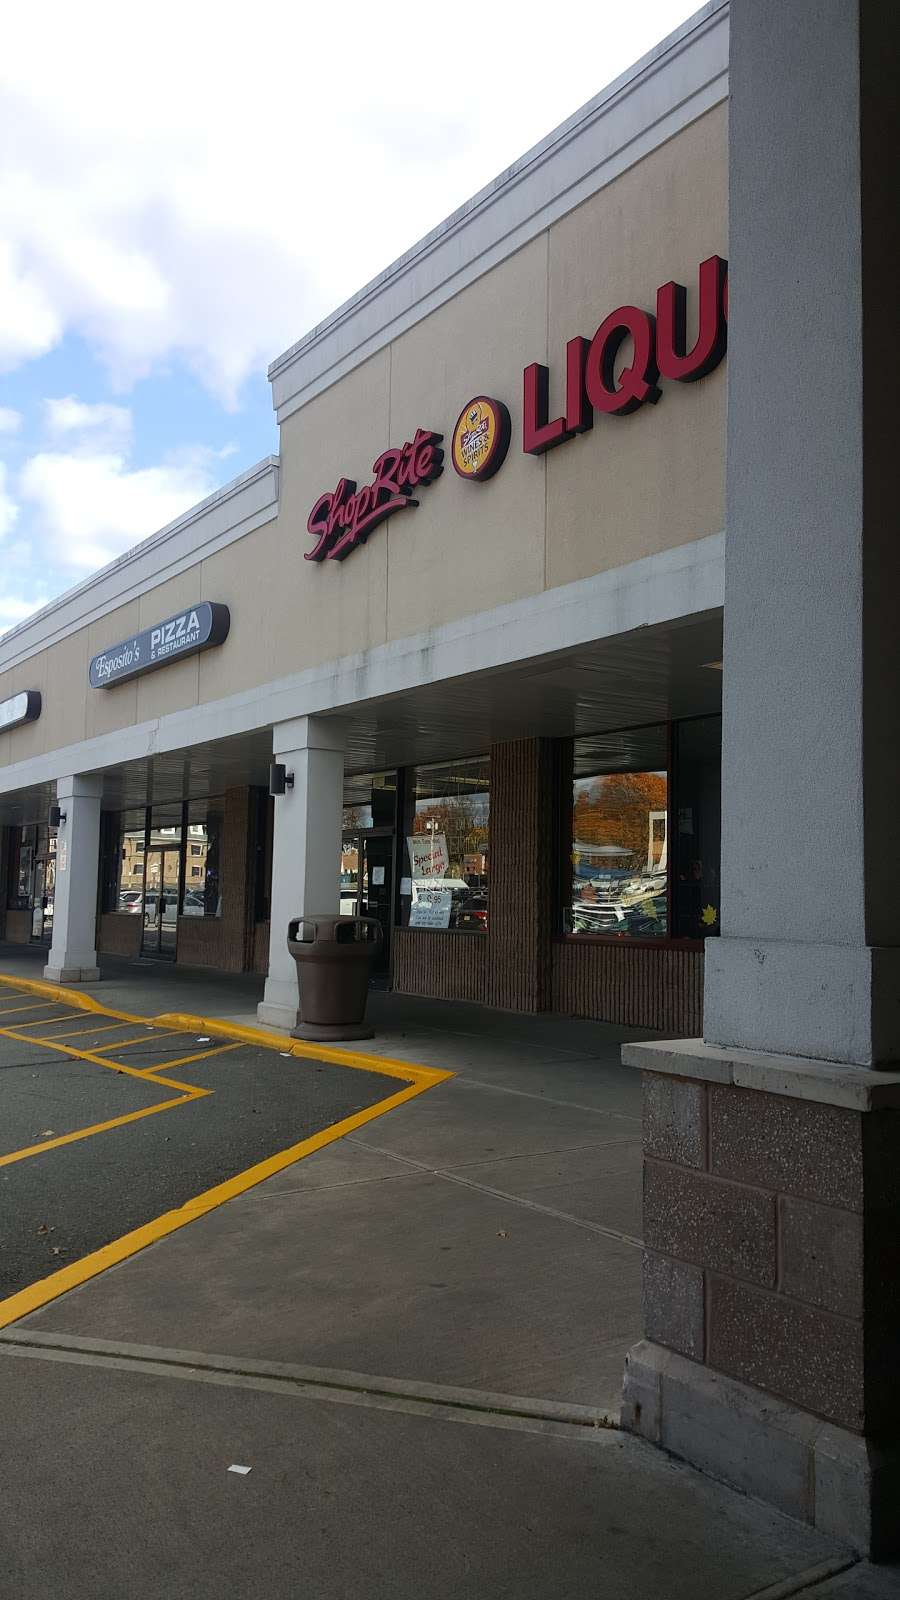 ShopRite of Emerson - bakery  | Photo 10 of 10 | Address: 425 Old Hook Rd, Emerson, NJ 07630, USA | Phone: (201) 262-0012